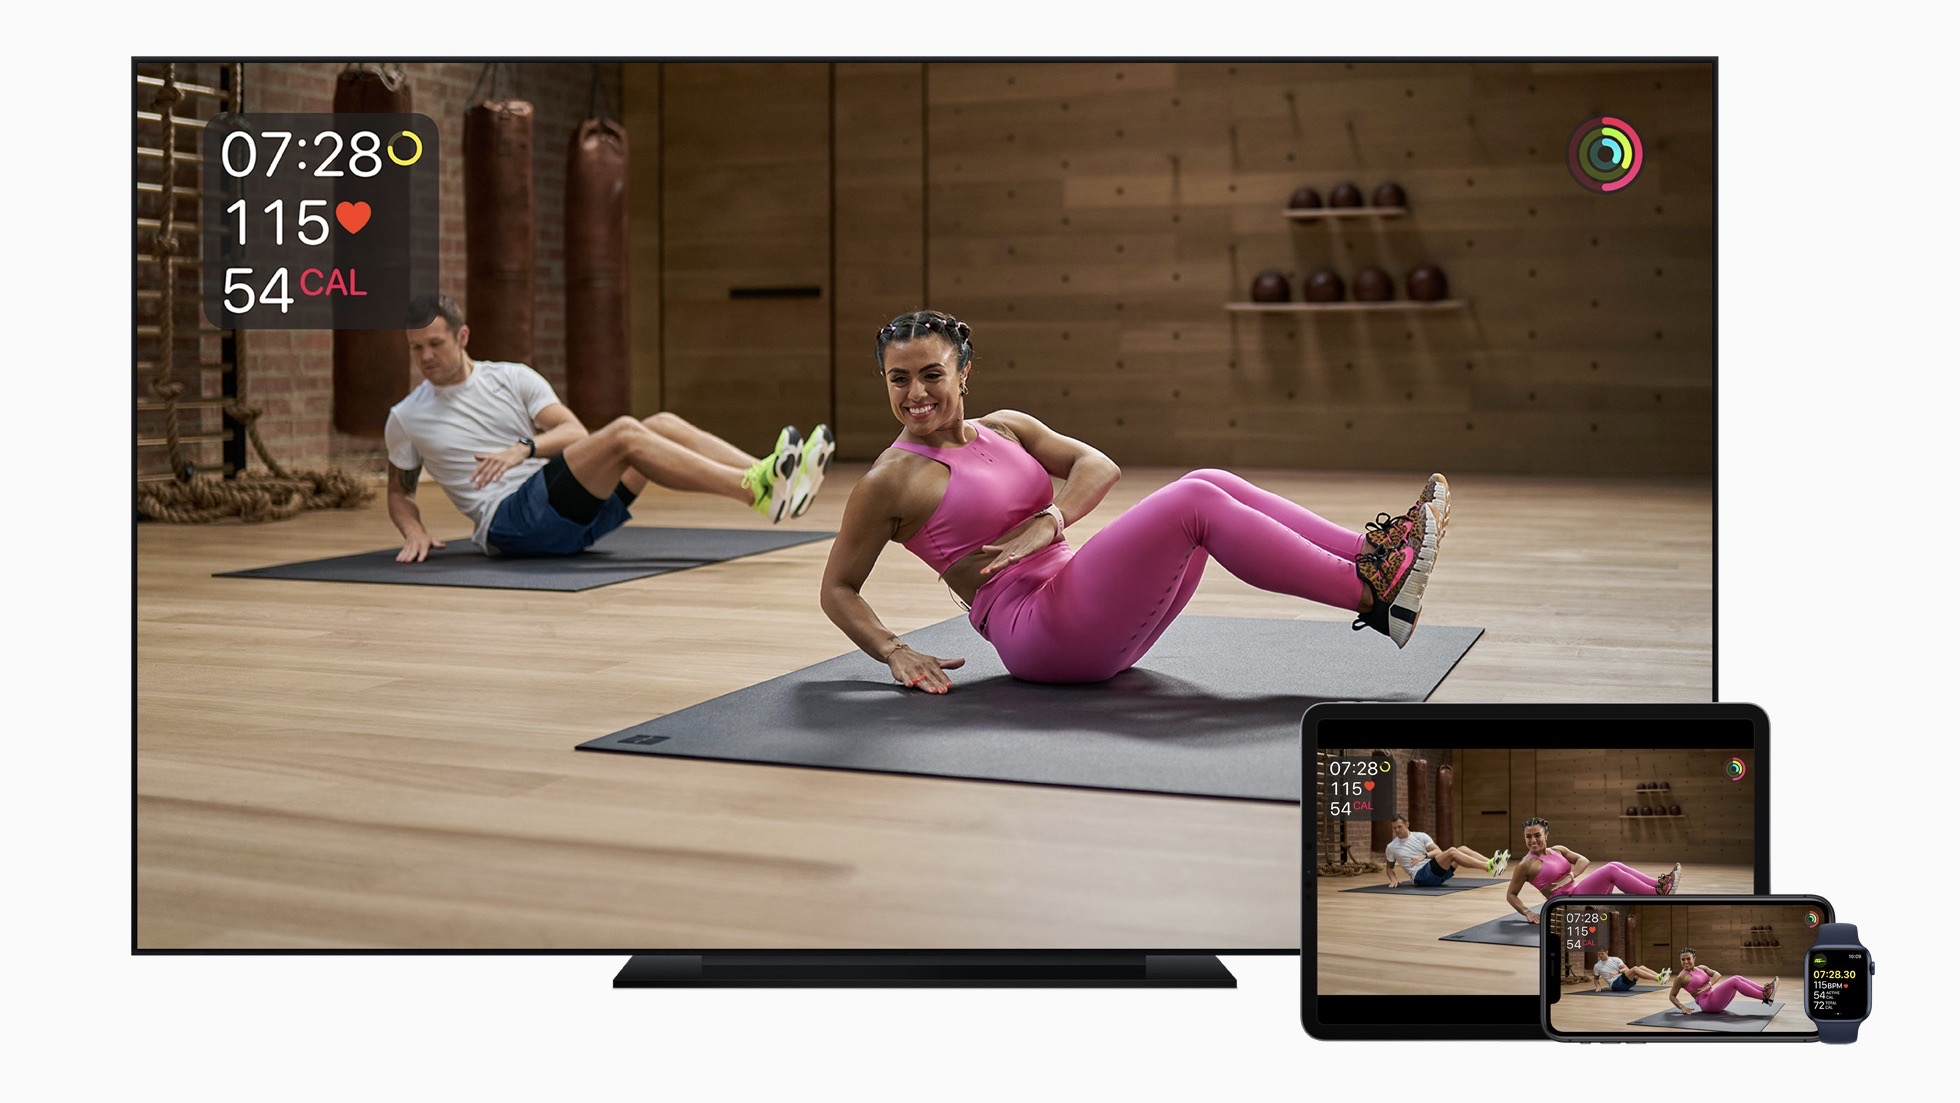 apple-fitness-plus-launch-date.jpeg?w=2000&quality=82&strip=all&ssl=1